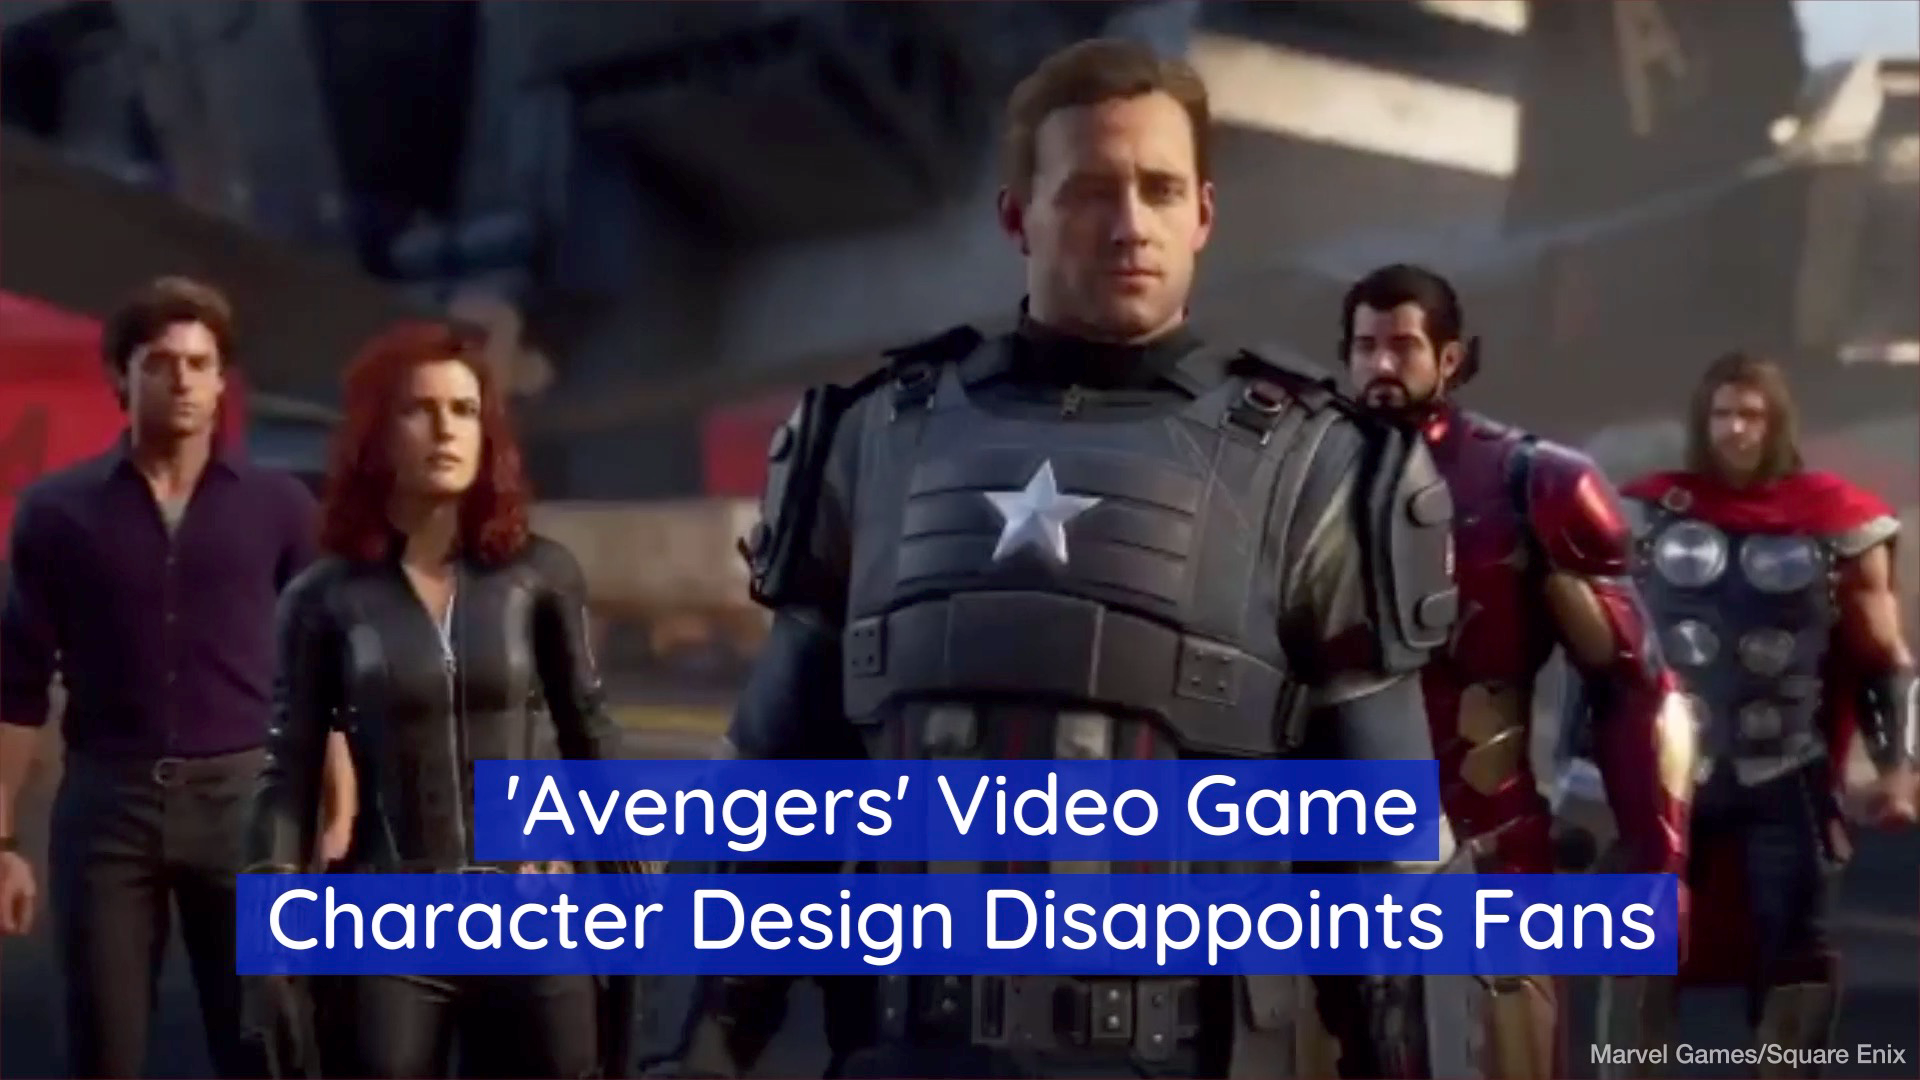 The New 'Avengers' Video Game Doesn't Have Great Graphics